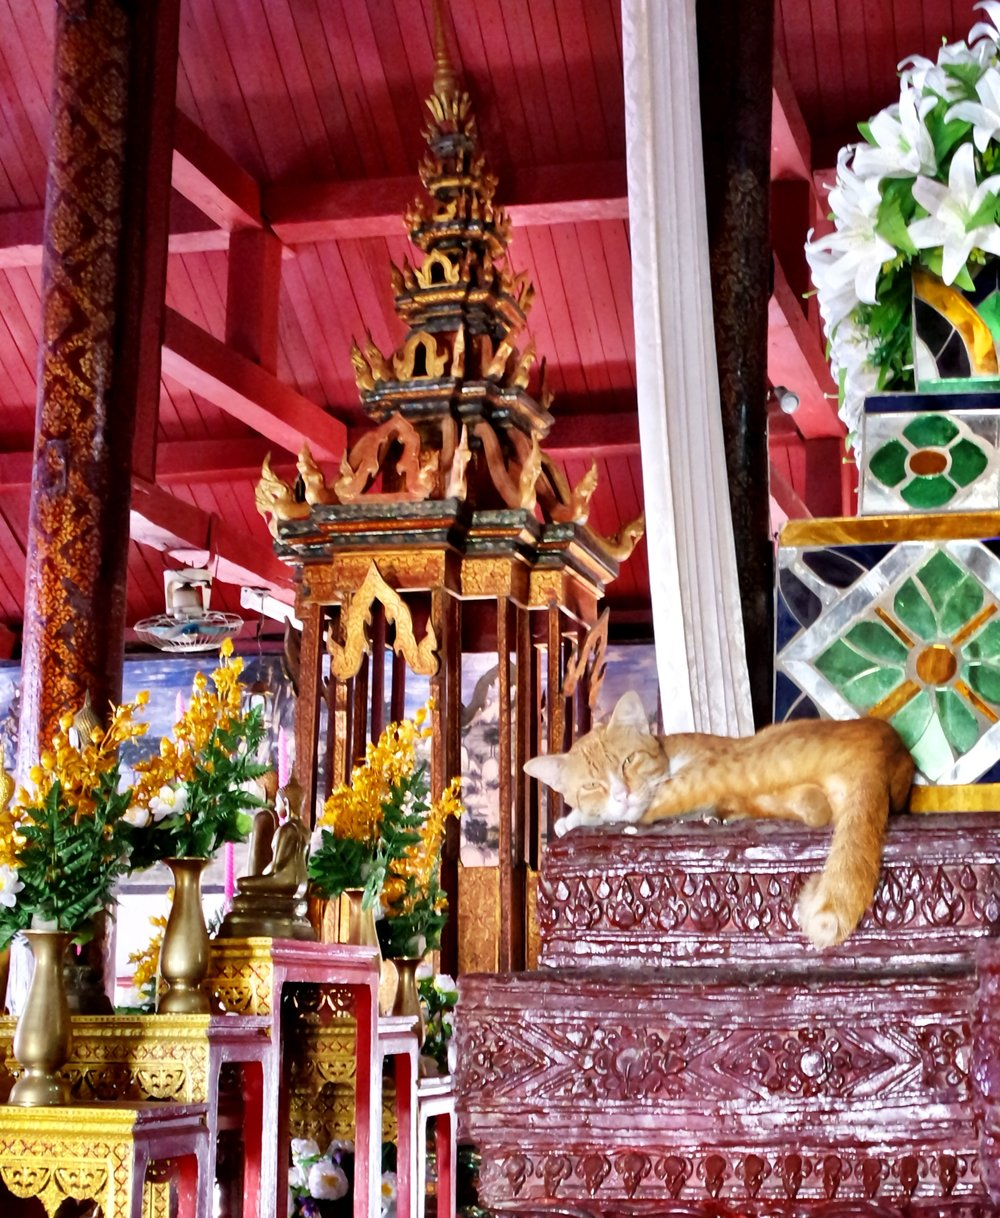 Cats aren't that common in Chiang Mai, but we found one resting in the second viharn, or prayer hall